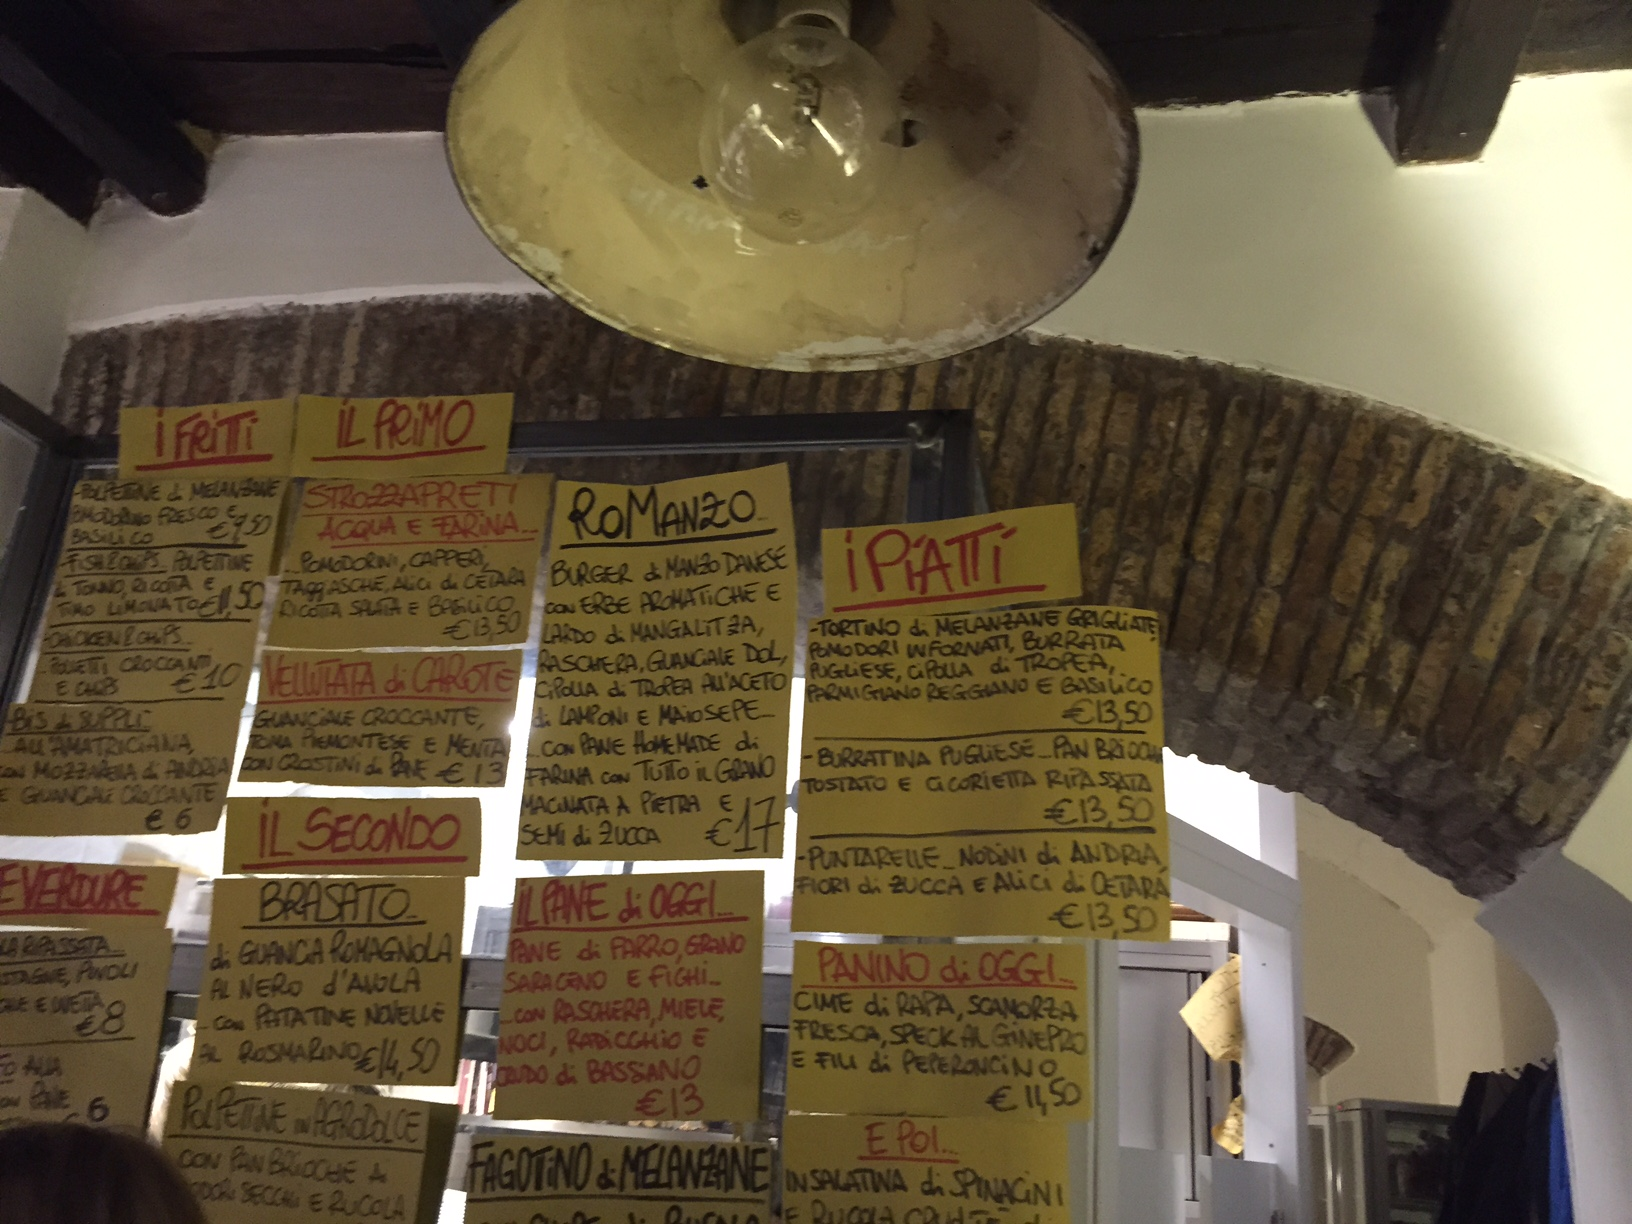 The construction paper menu in all of its glory. Photo by Max Siskind.